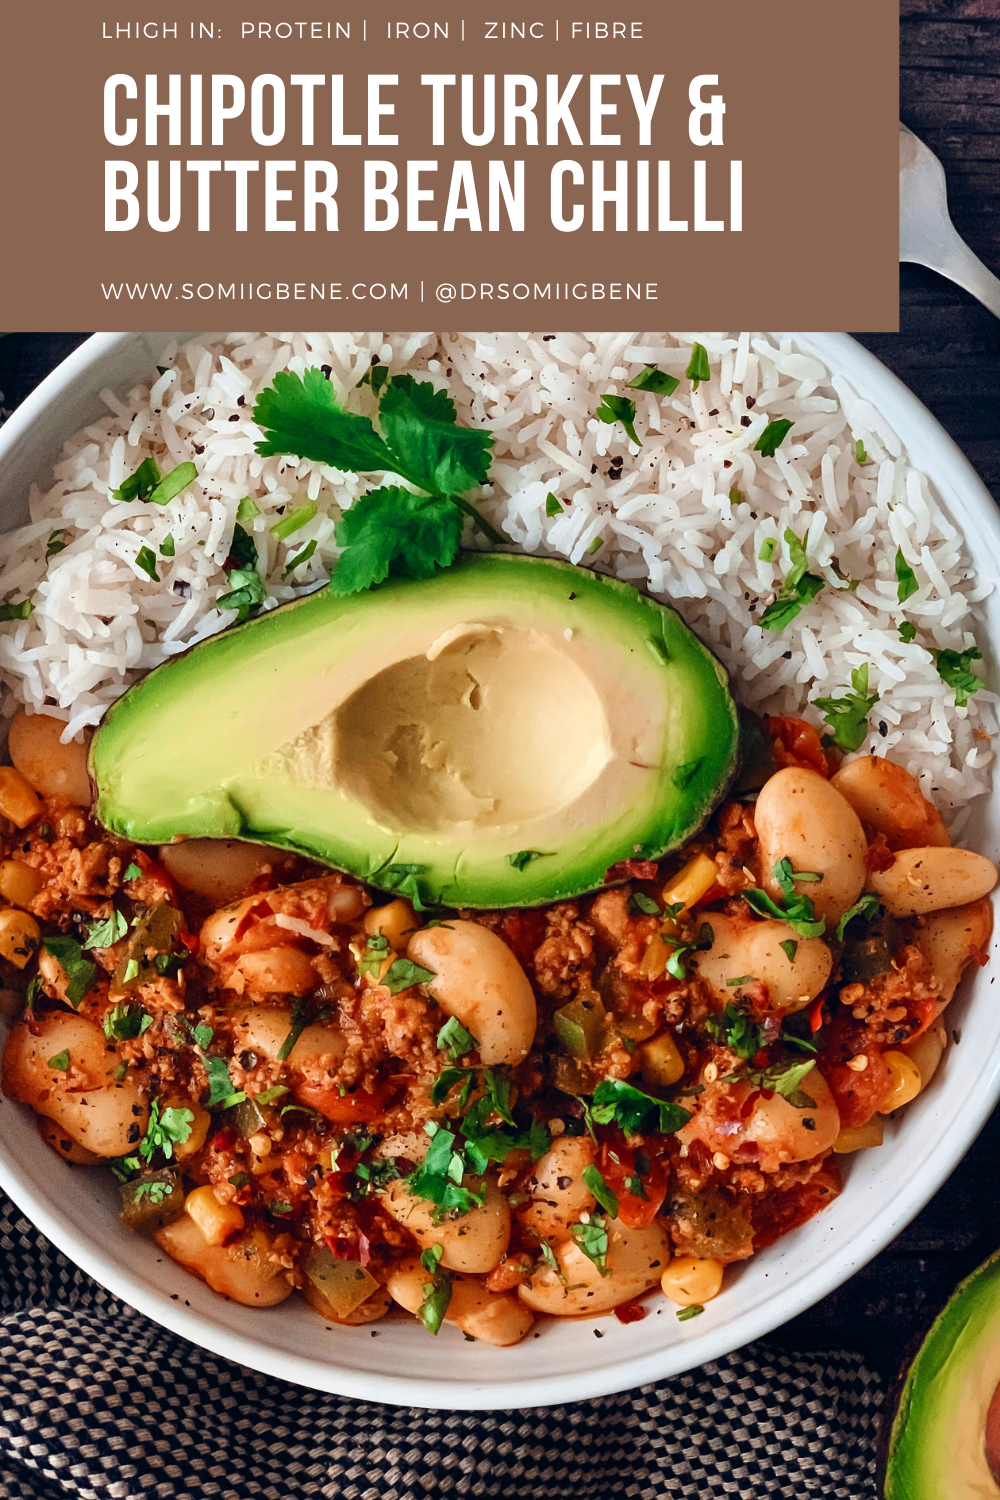 Chipotle Turkey and Butter Bean Chilli